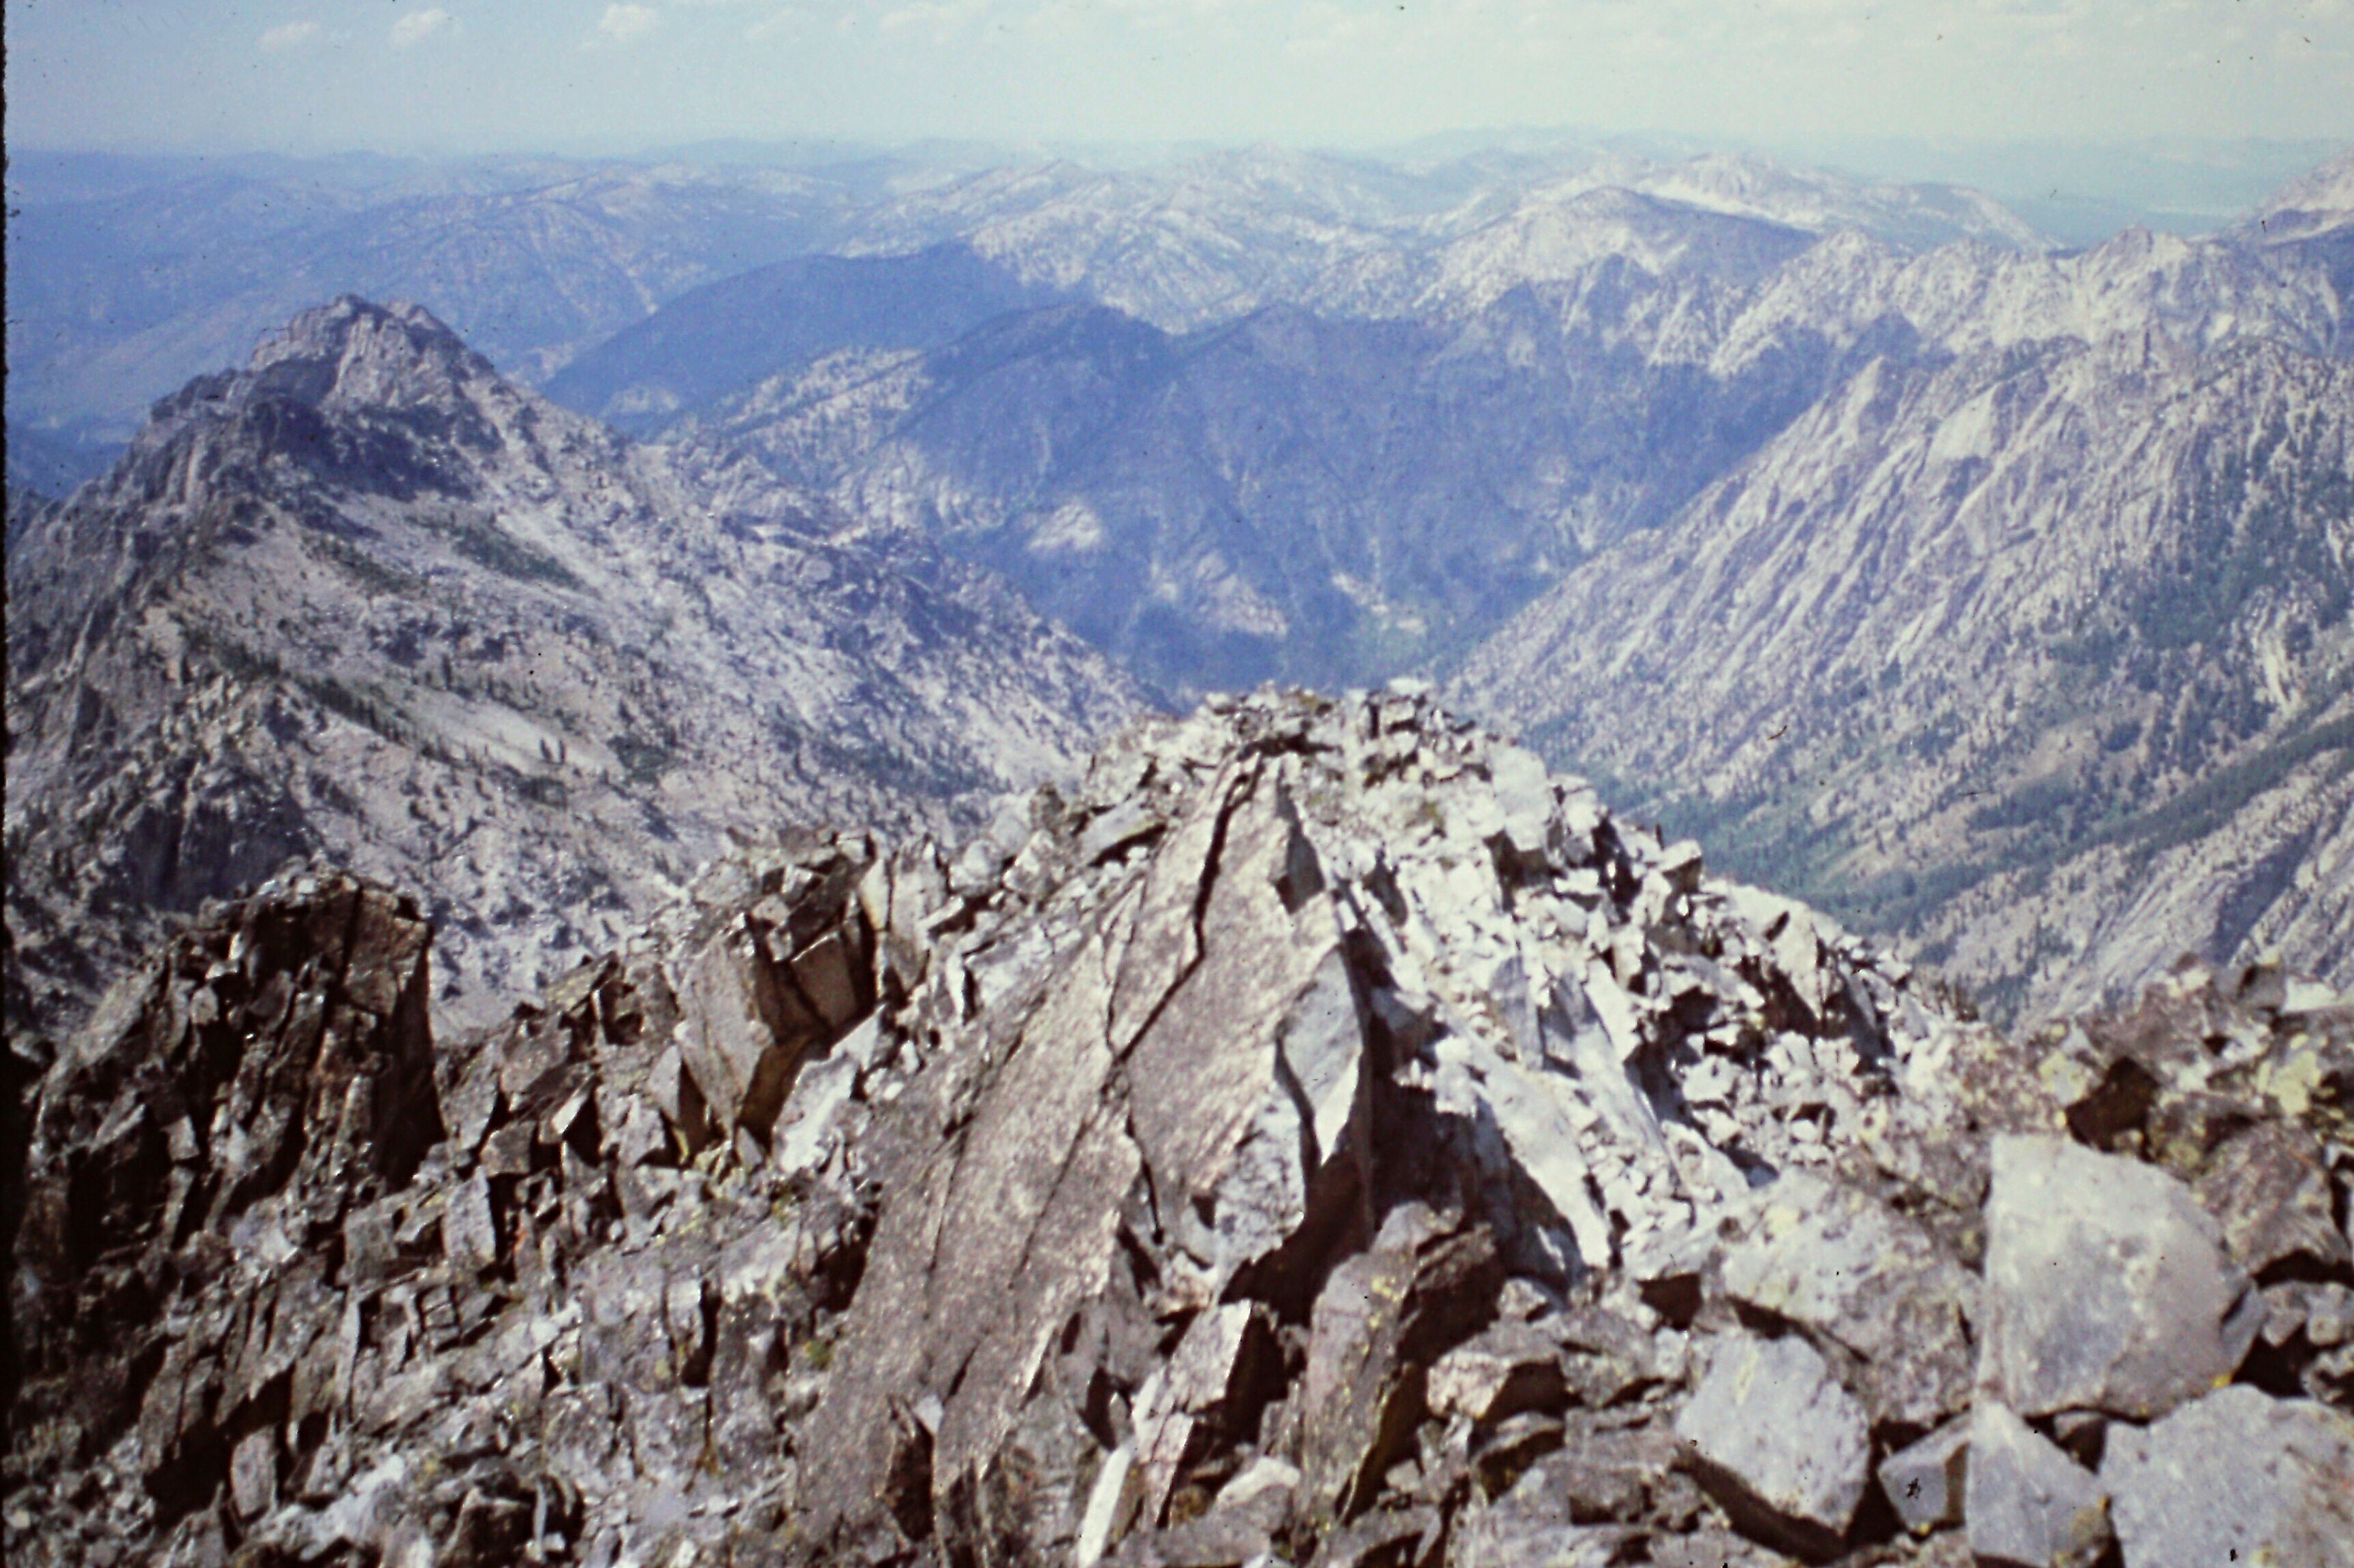 Looking down the west ridge. Steve Grantham Photo